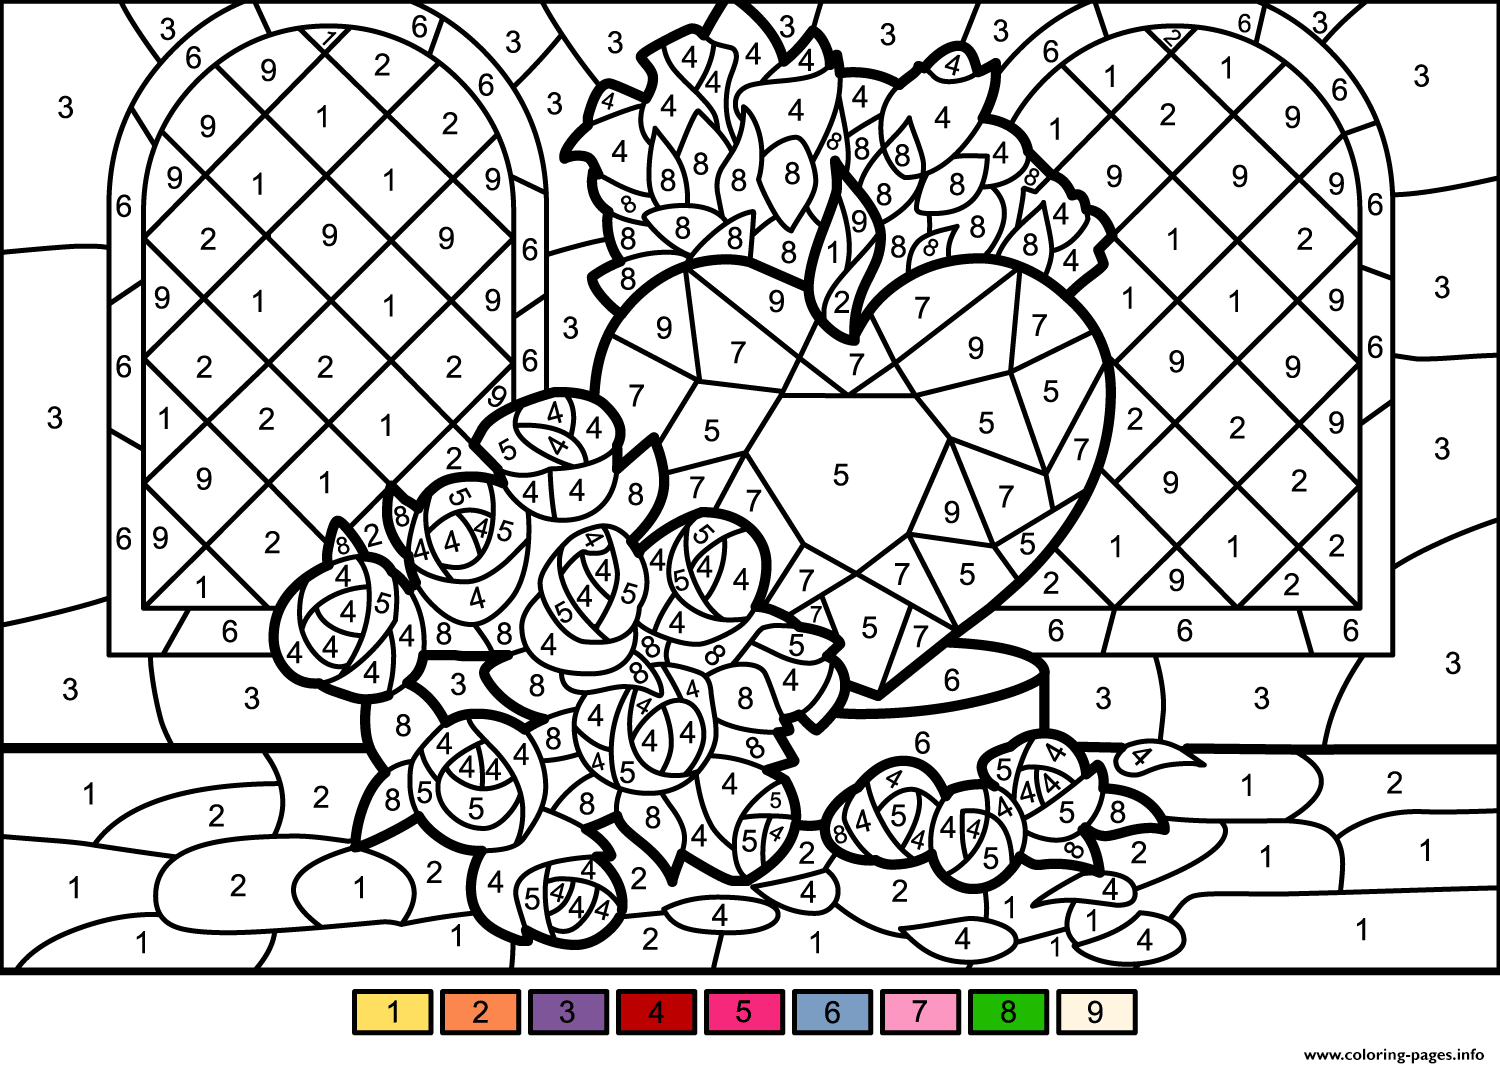 Print Roses And Heart Color By Number Coloring Pages Unicorn Coloring Pages Color By Number Printable Coloring Pages